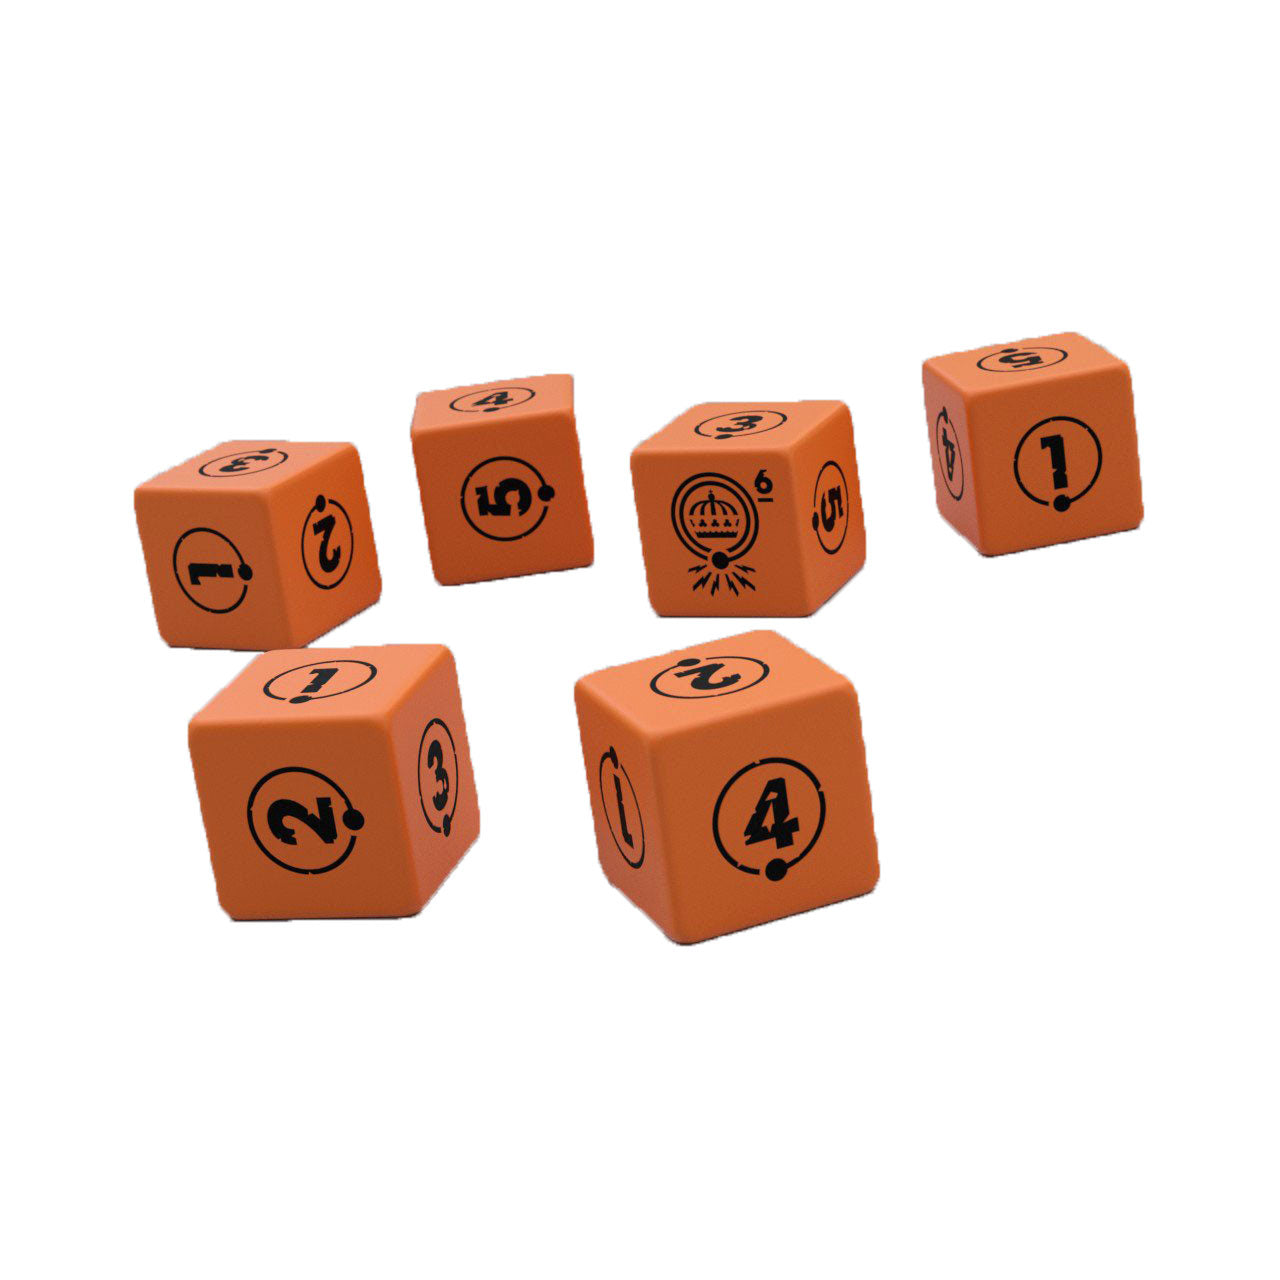 Tales from the Loop - Dice Set